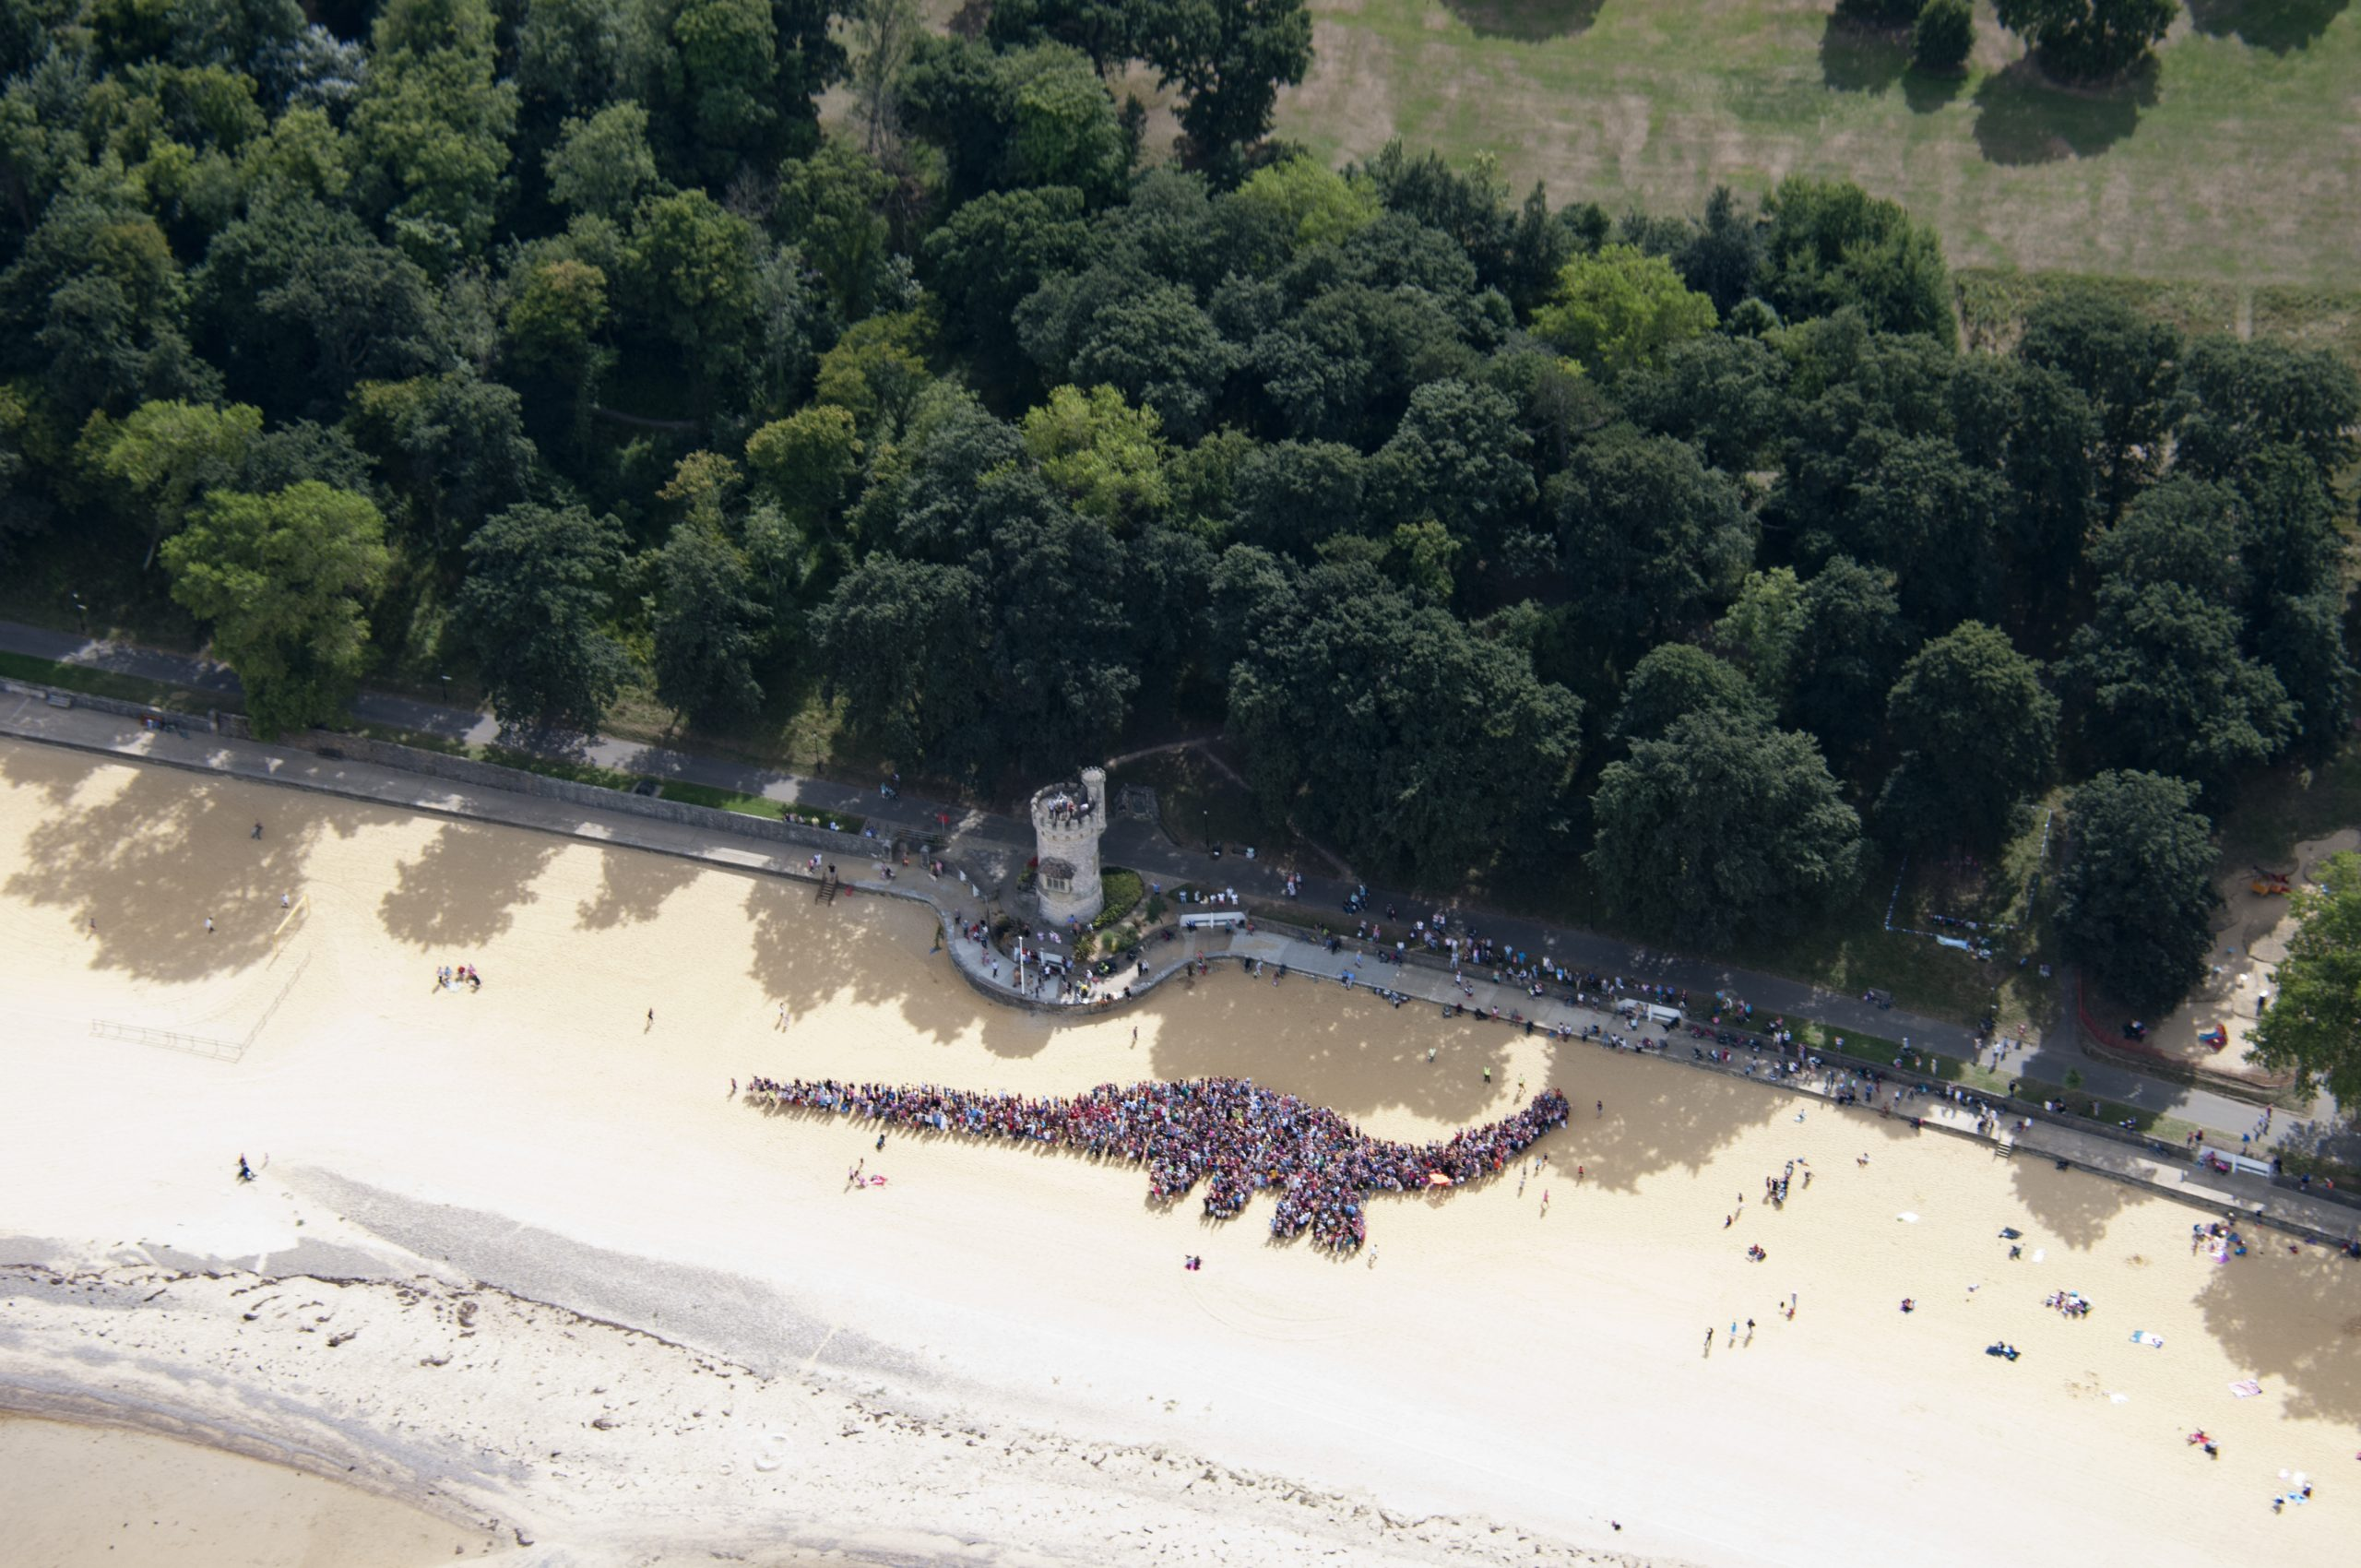 A dinosaur shape made from humans, from the air, Ryde, Isle of Wight